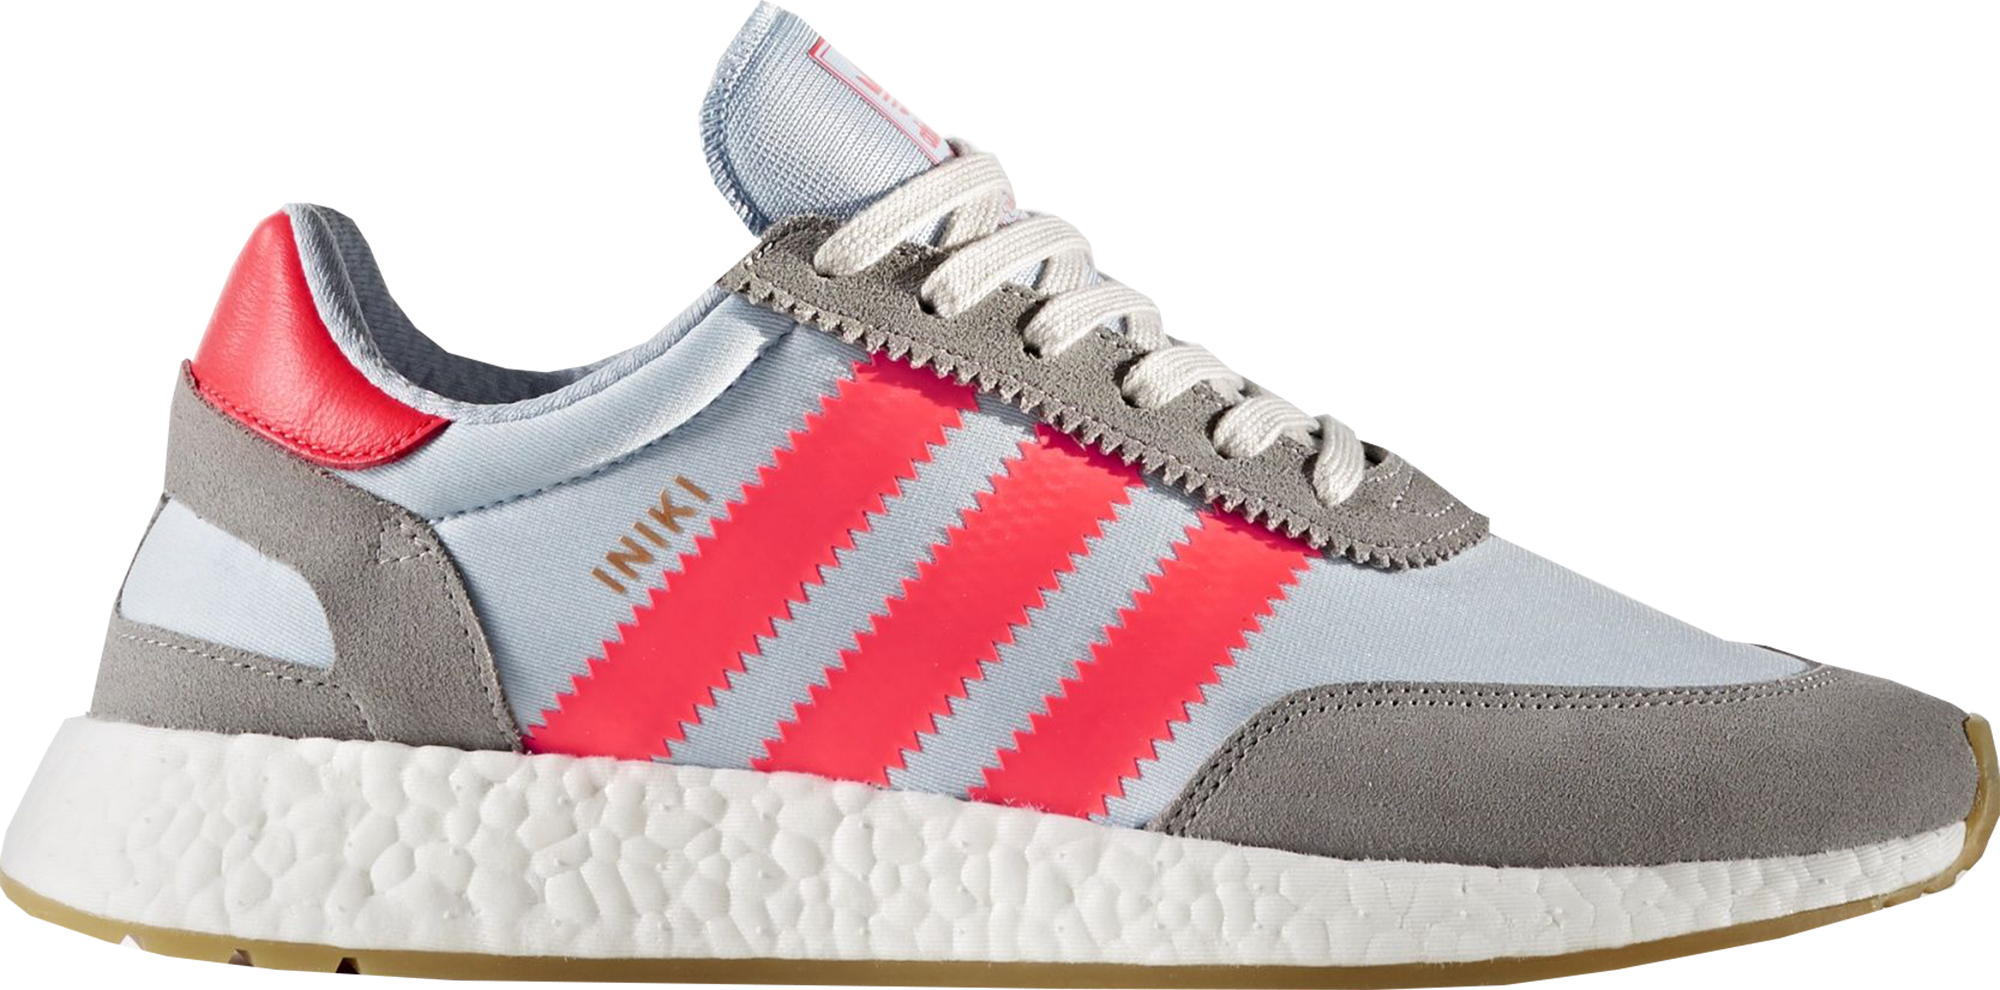 adidas Iniki Runner Grey Turbo Gum